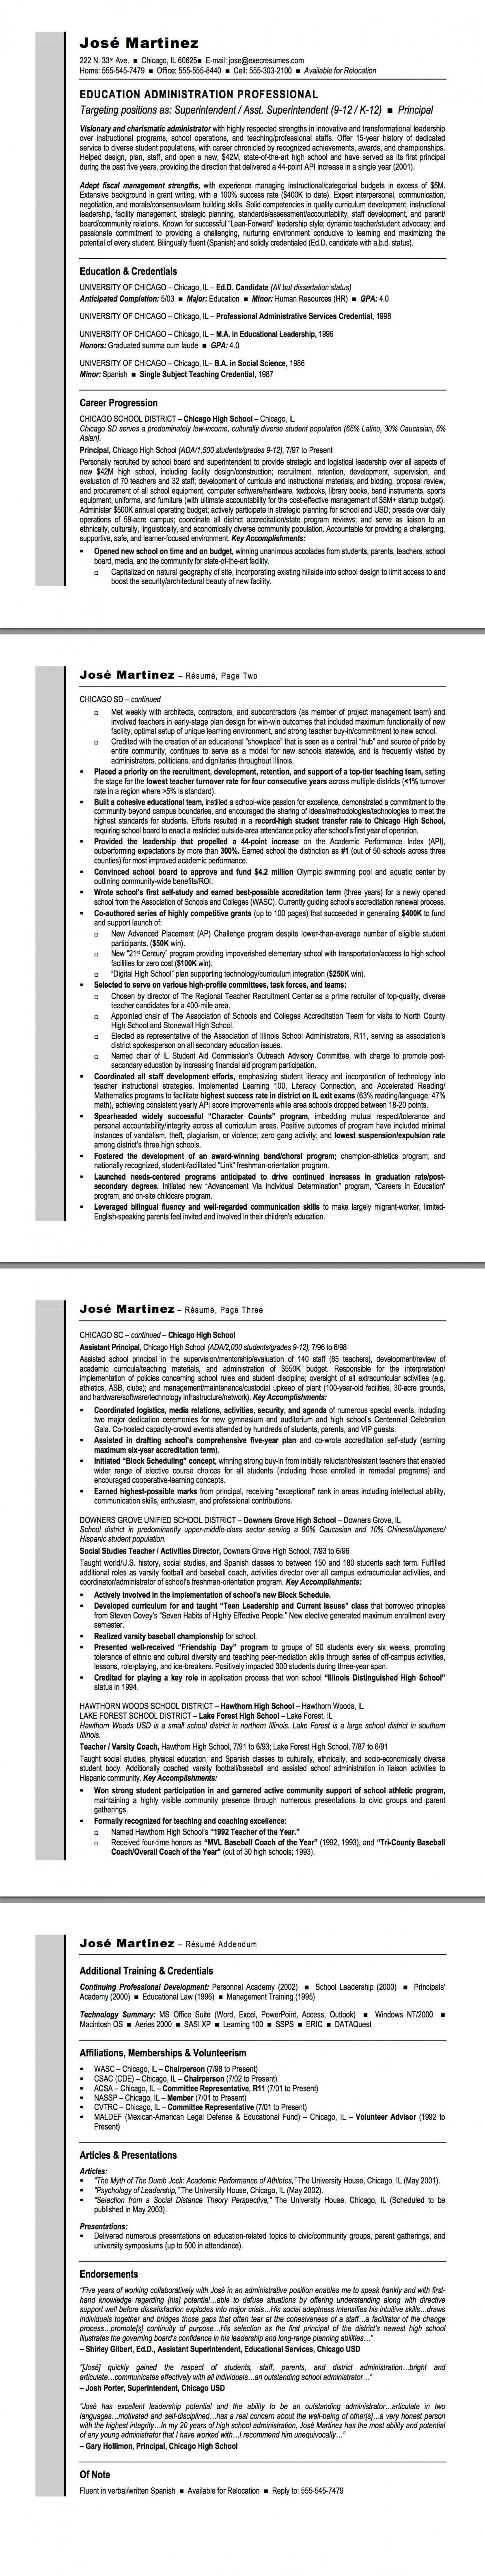 015 Component Of Research Paper Ppt Educational Administrator Sample Resume Wondrous Parts Chapter 1-5 1 1920